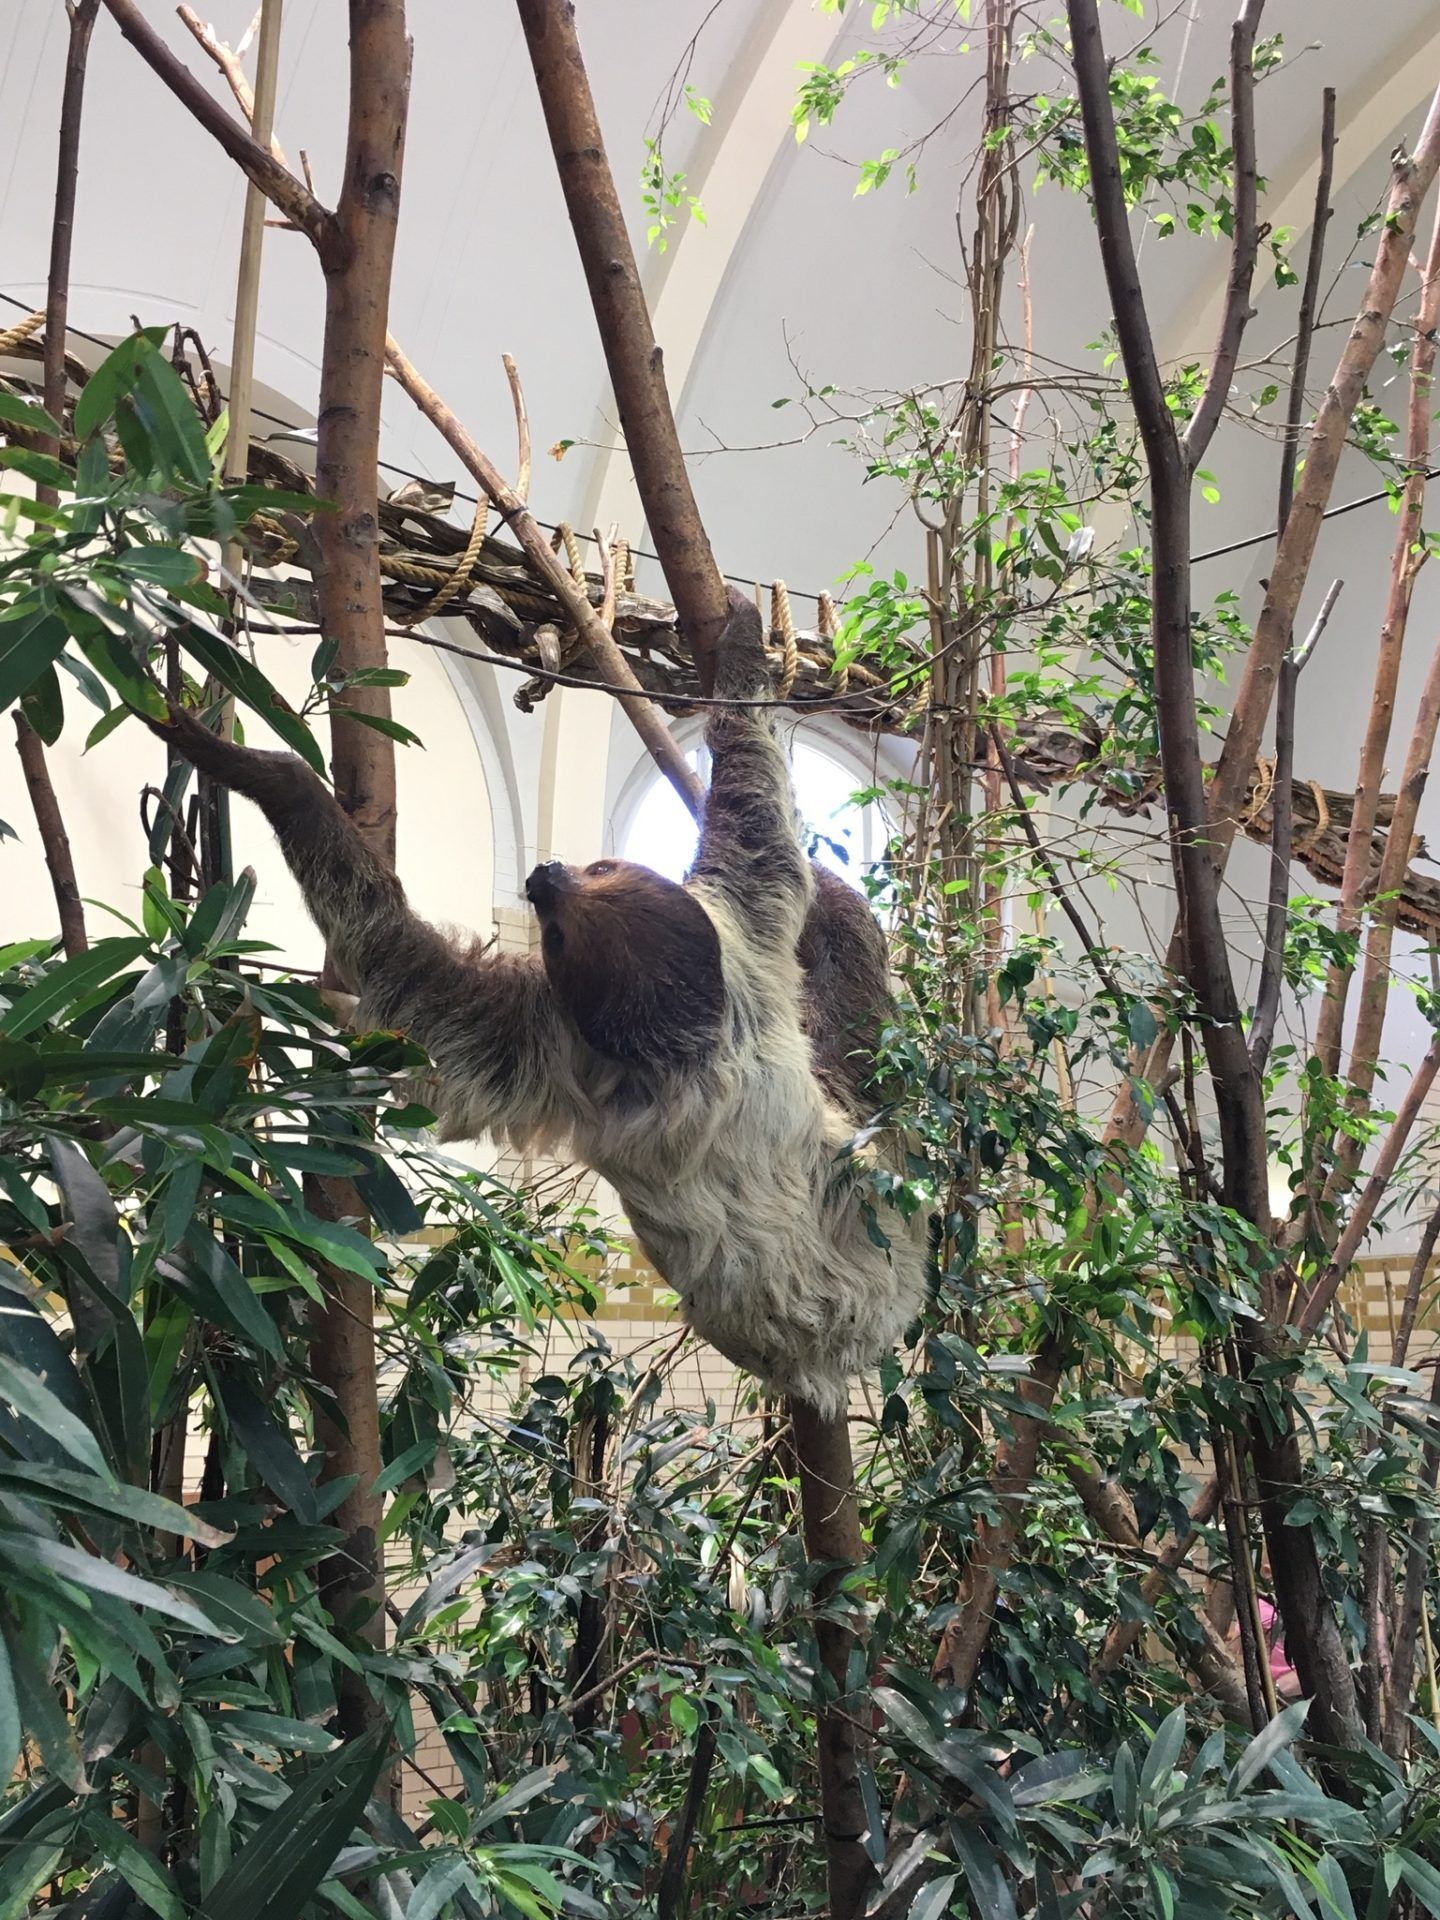 A sloth at Amsterdam's zoo